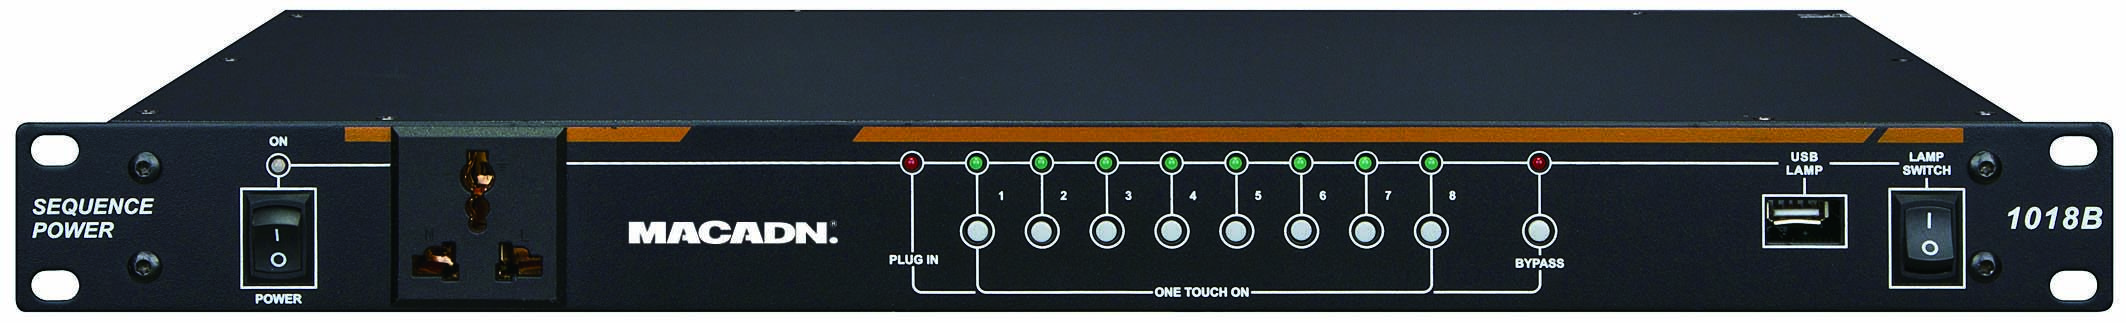 Power Sequence Controller 1018B